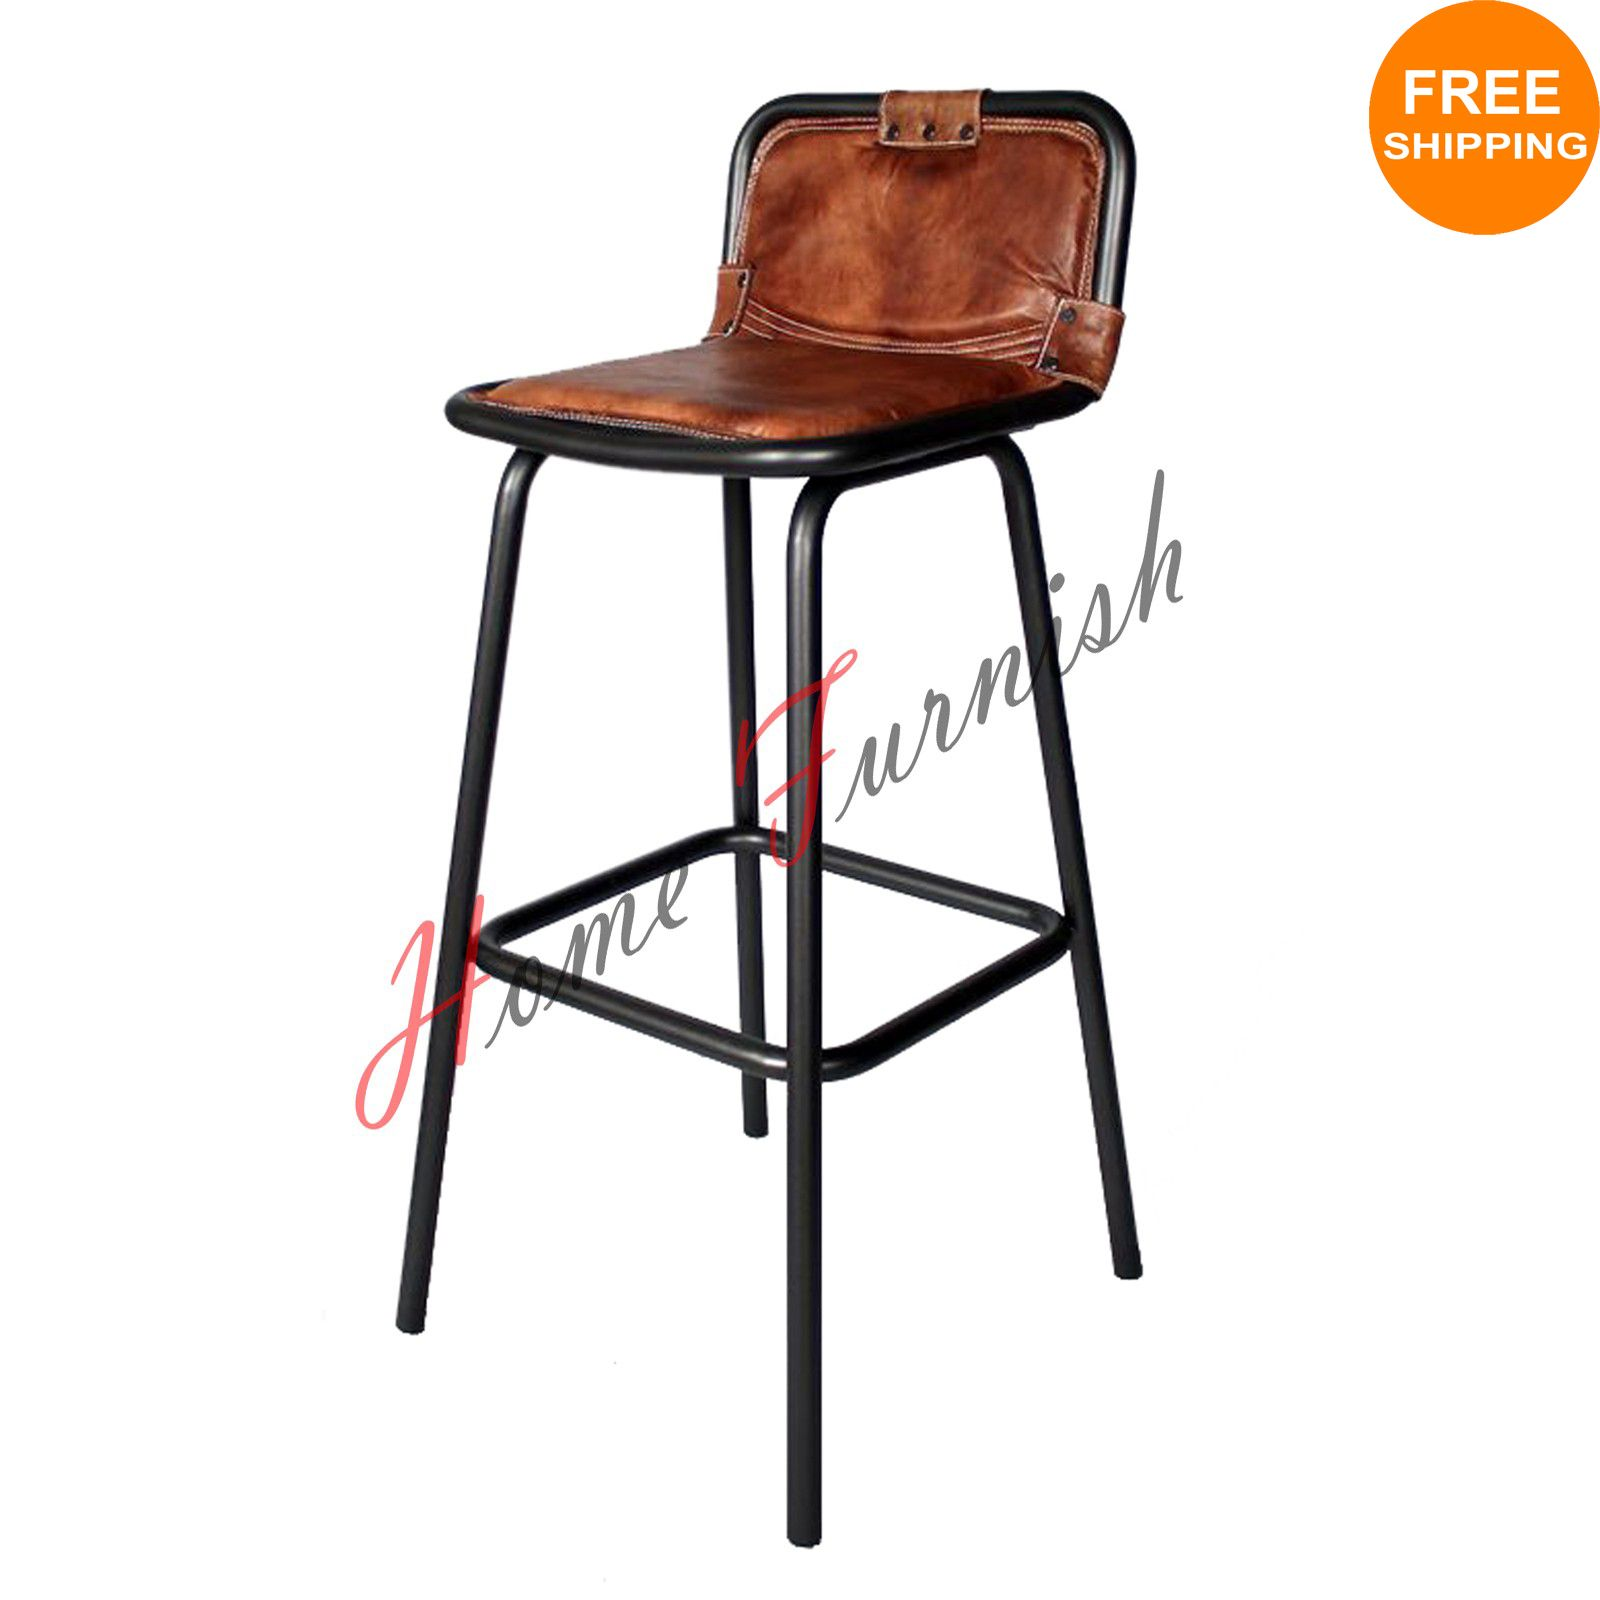 Industrial Look Chairs Industrial Bar Stool Leather Seat With Back Brown Leather